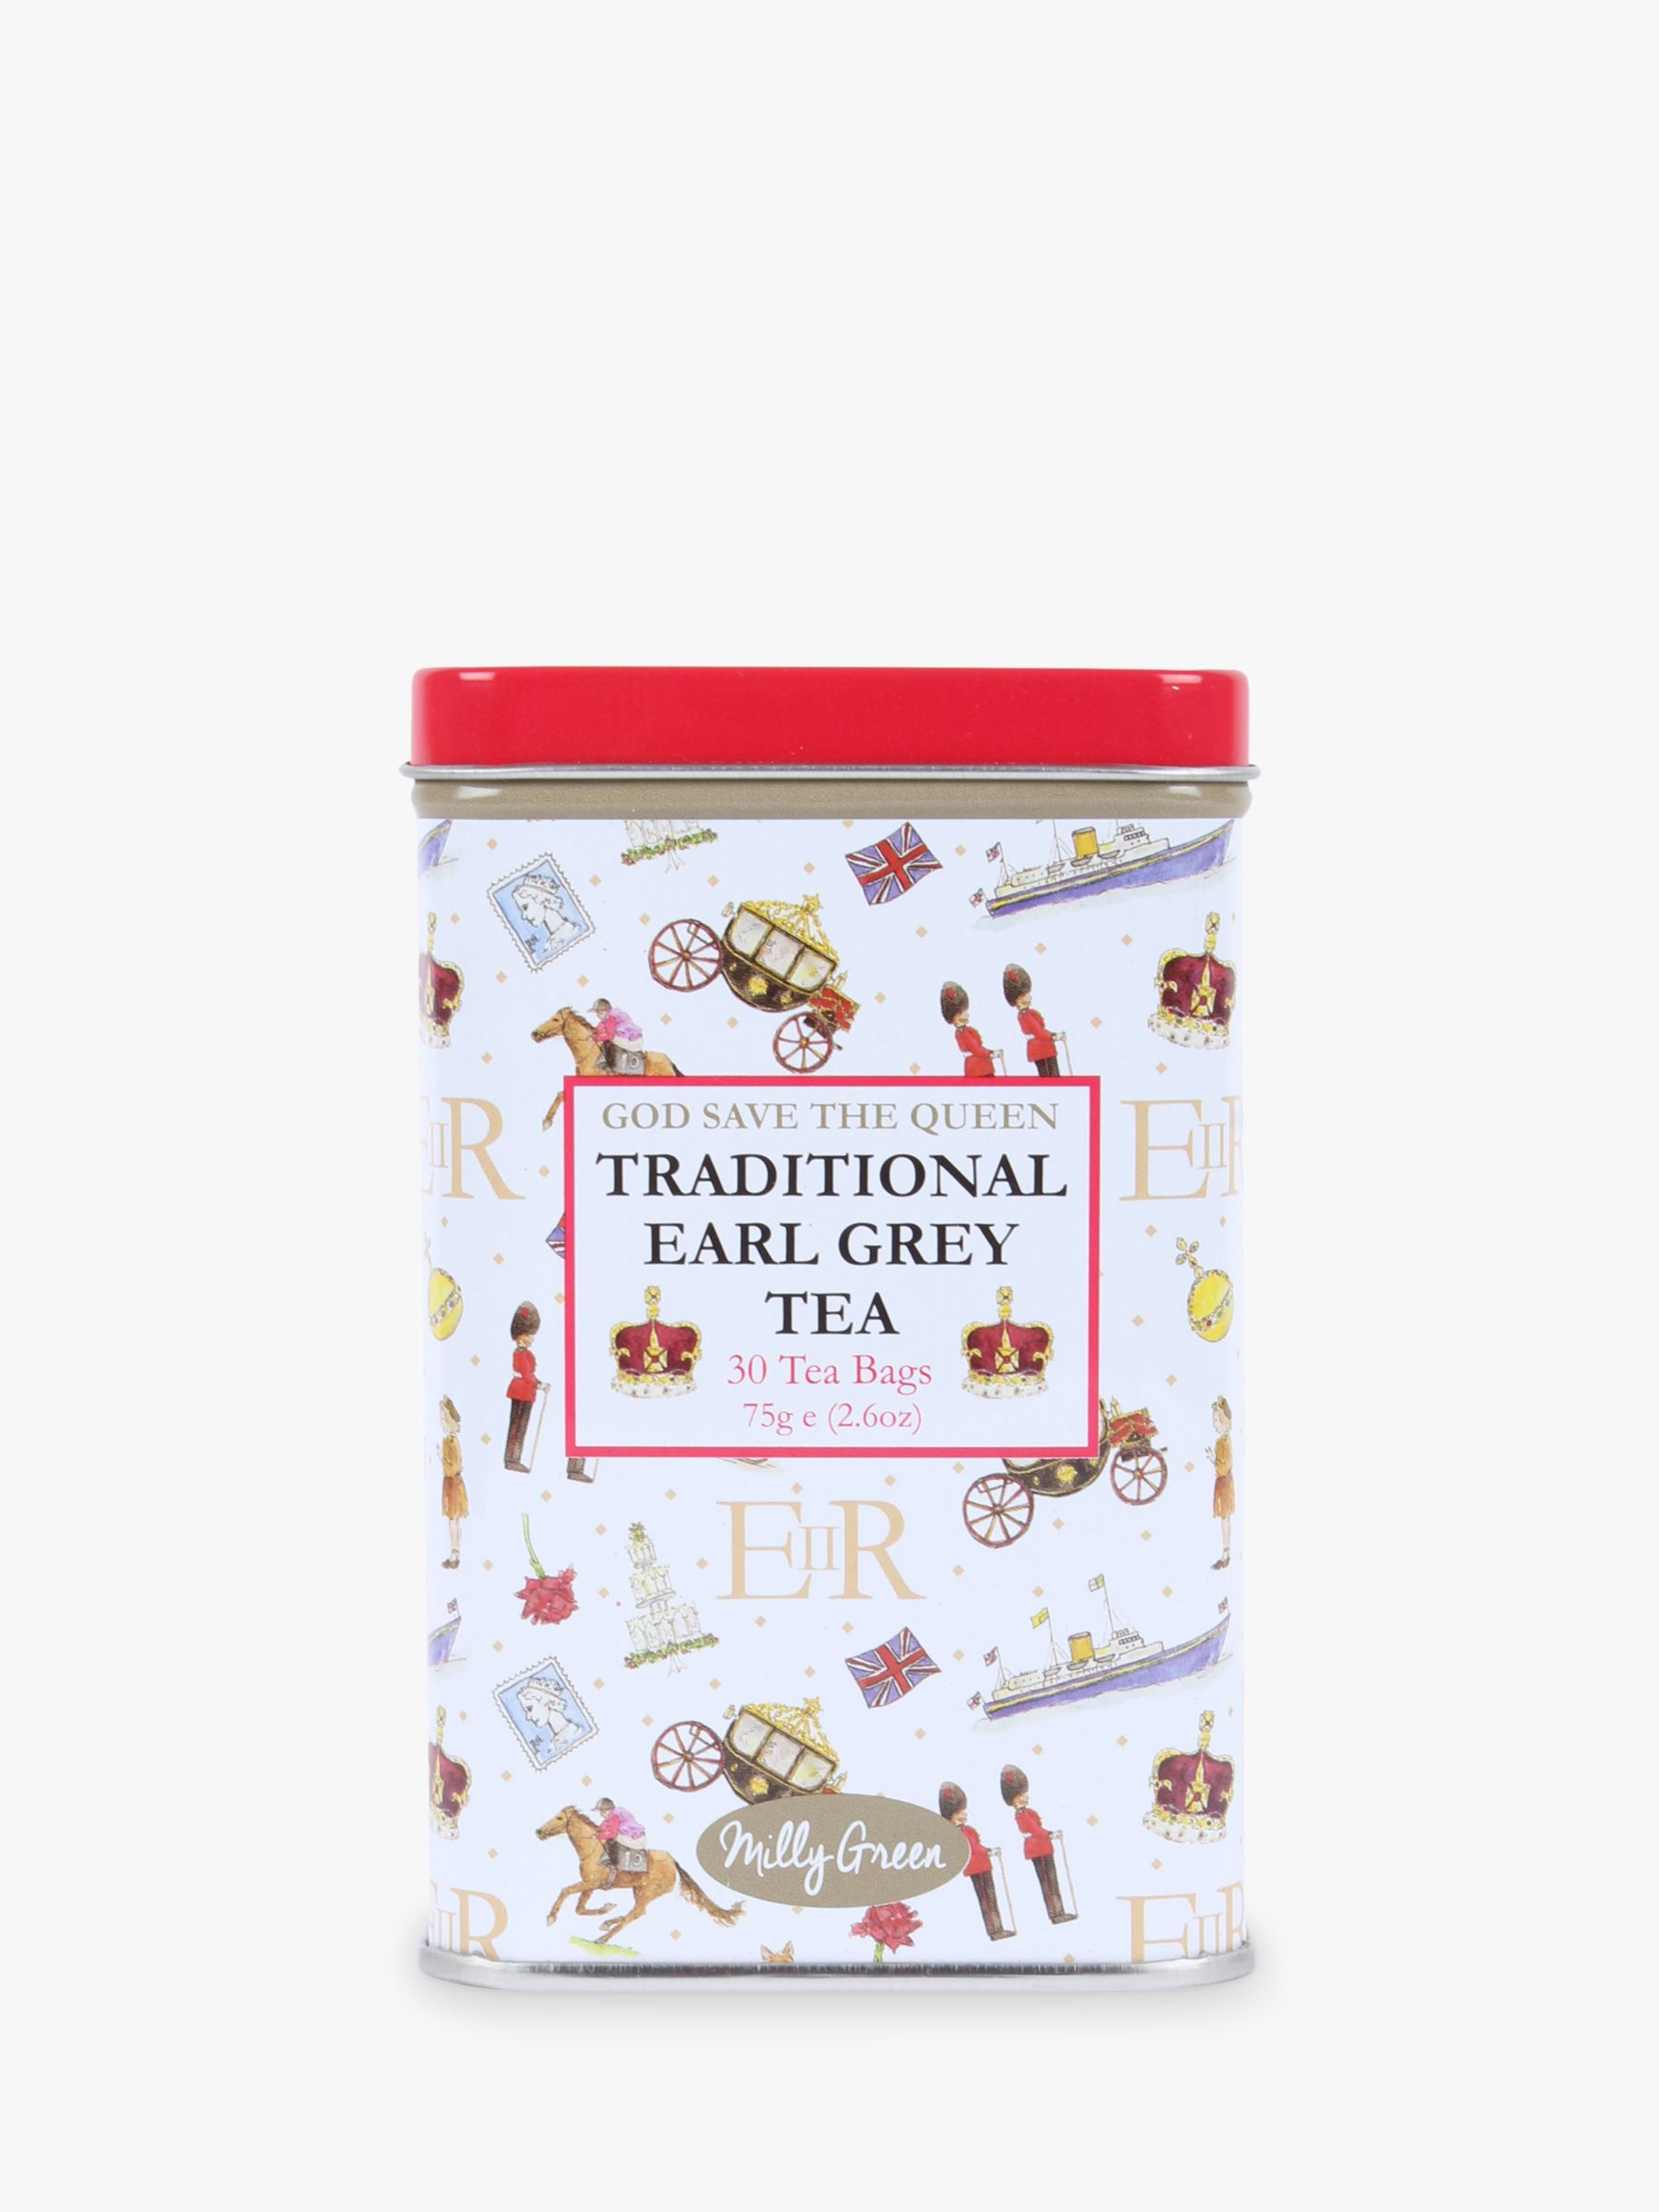 Milly Green Milly Green Celebrating Britain 'God Save The Queen' Earl Grey Tea & Caddy, 75g